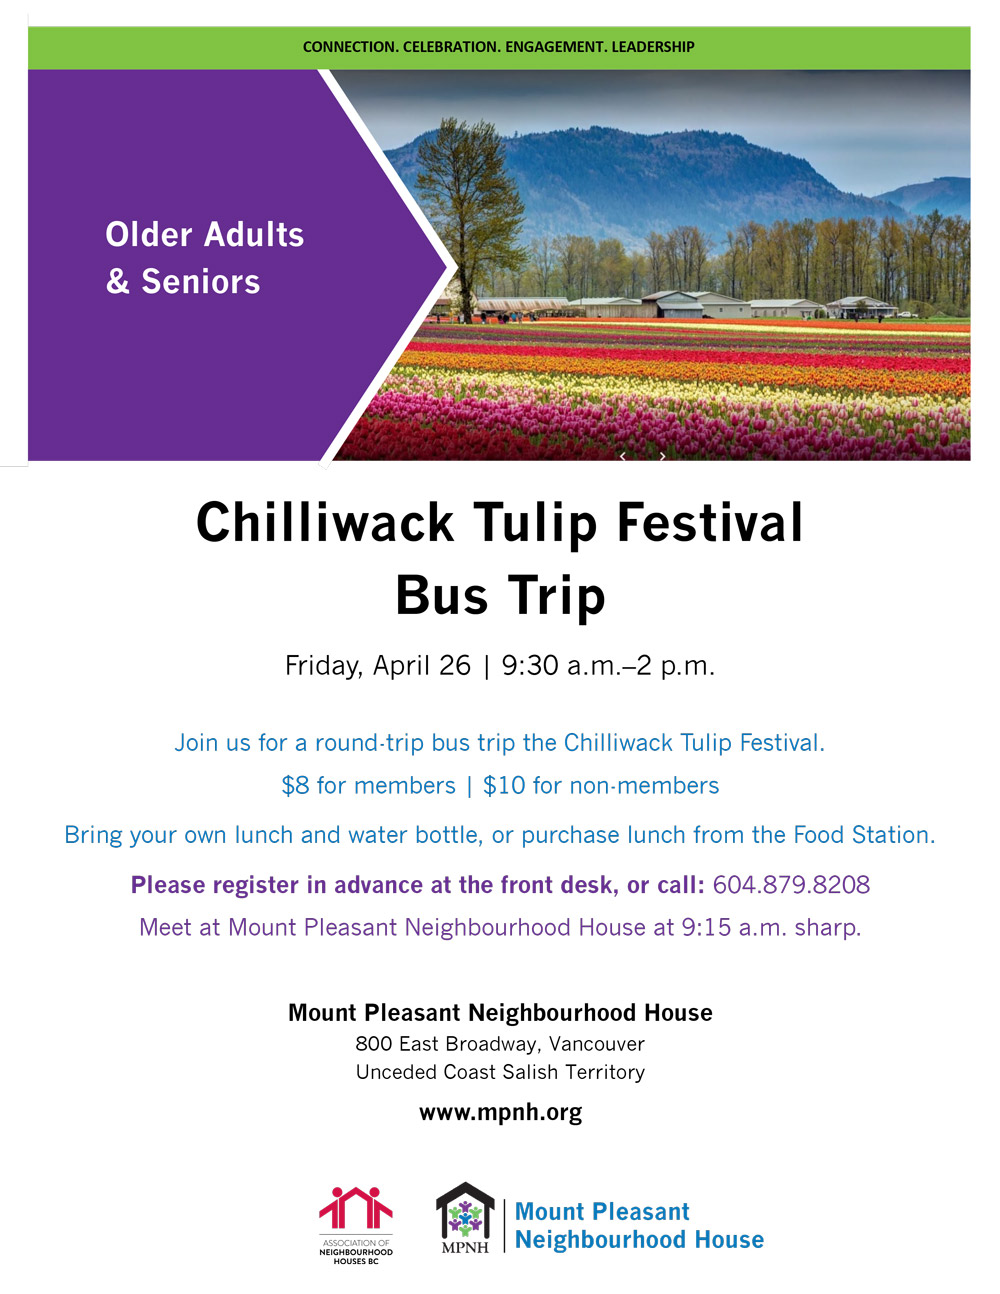 An image of the poster, with fields of tulips and mountains in the background, including event details.